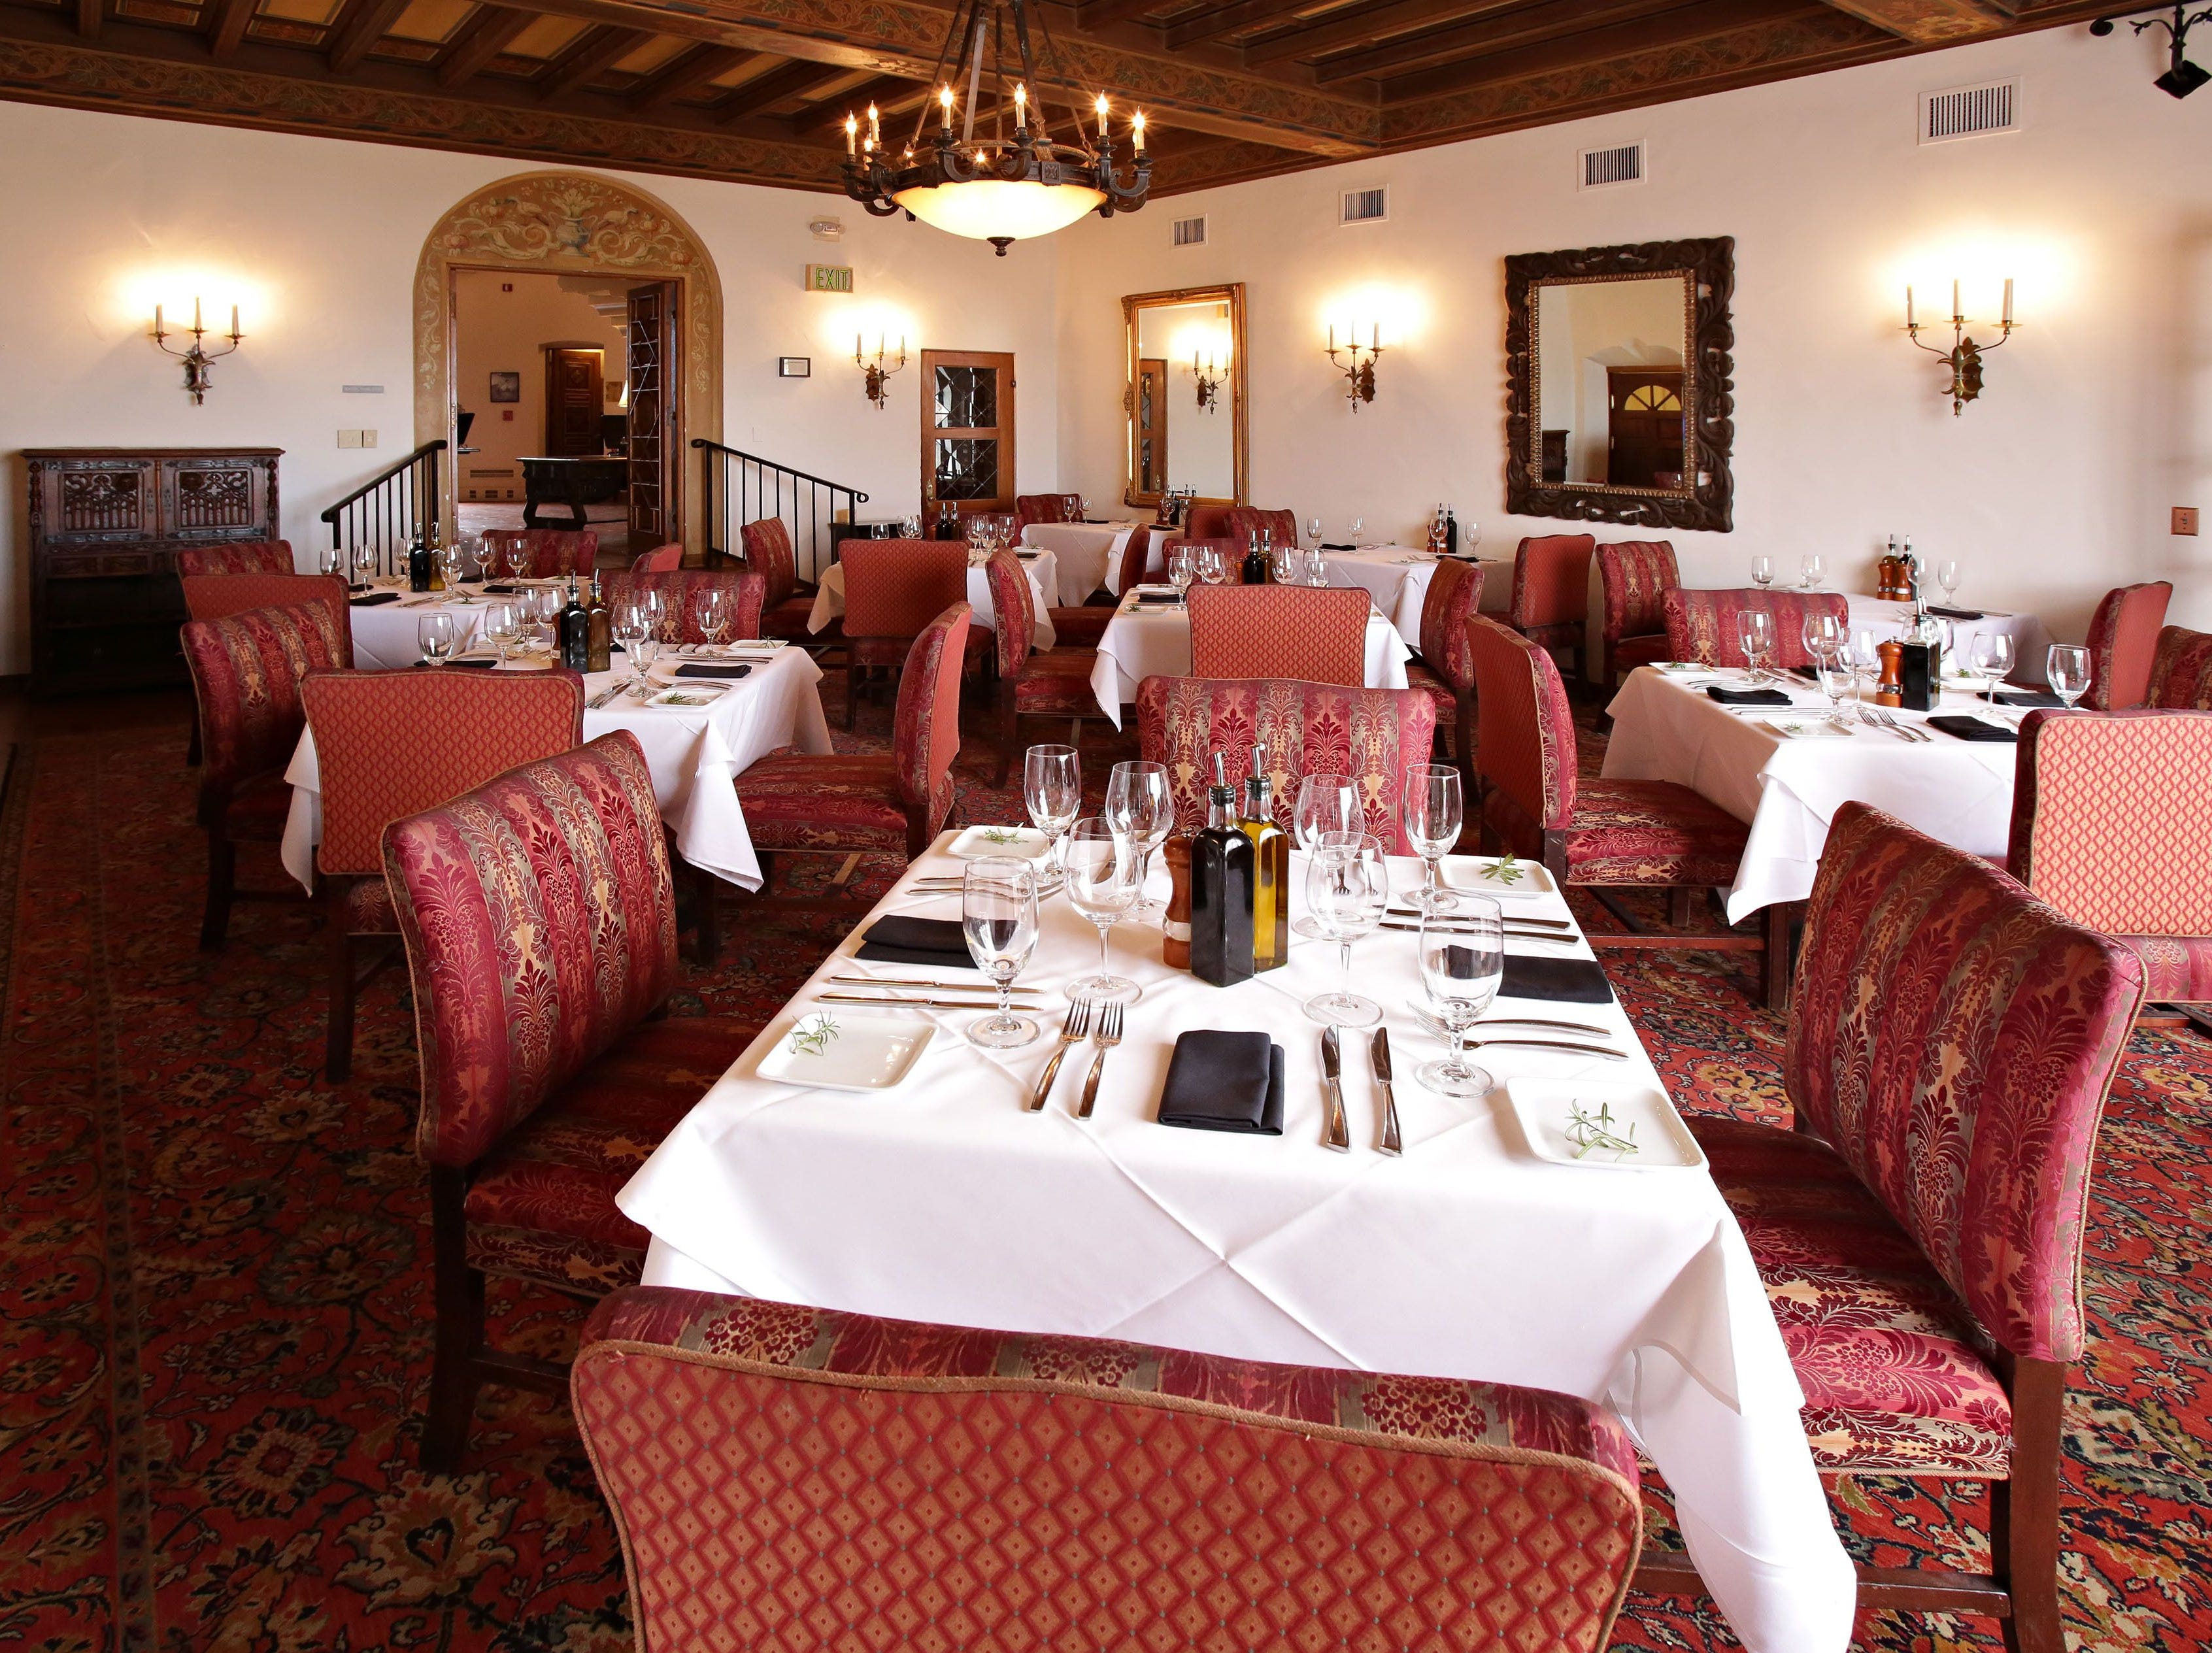 WRIGLEY MANSION | Choose between seatings at 10 a.m. and 1 p.m. for a brunch ($85 that includes mimosas, $42 for ages 12 and younger) that features prime rib, leg of lamb, glazed Steamship Ham, leek and Gruyere quiche, whole roast salmon, seasonal vegetable hash, special kids items and an Easter-themed dessert display.DETAILS: 2501 E. Telawa Trail, Phoenix. 602-955-4079, wrigleymansion.com